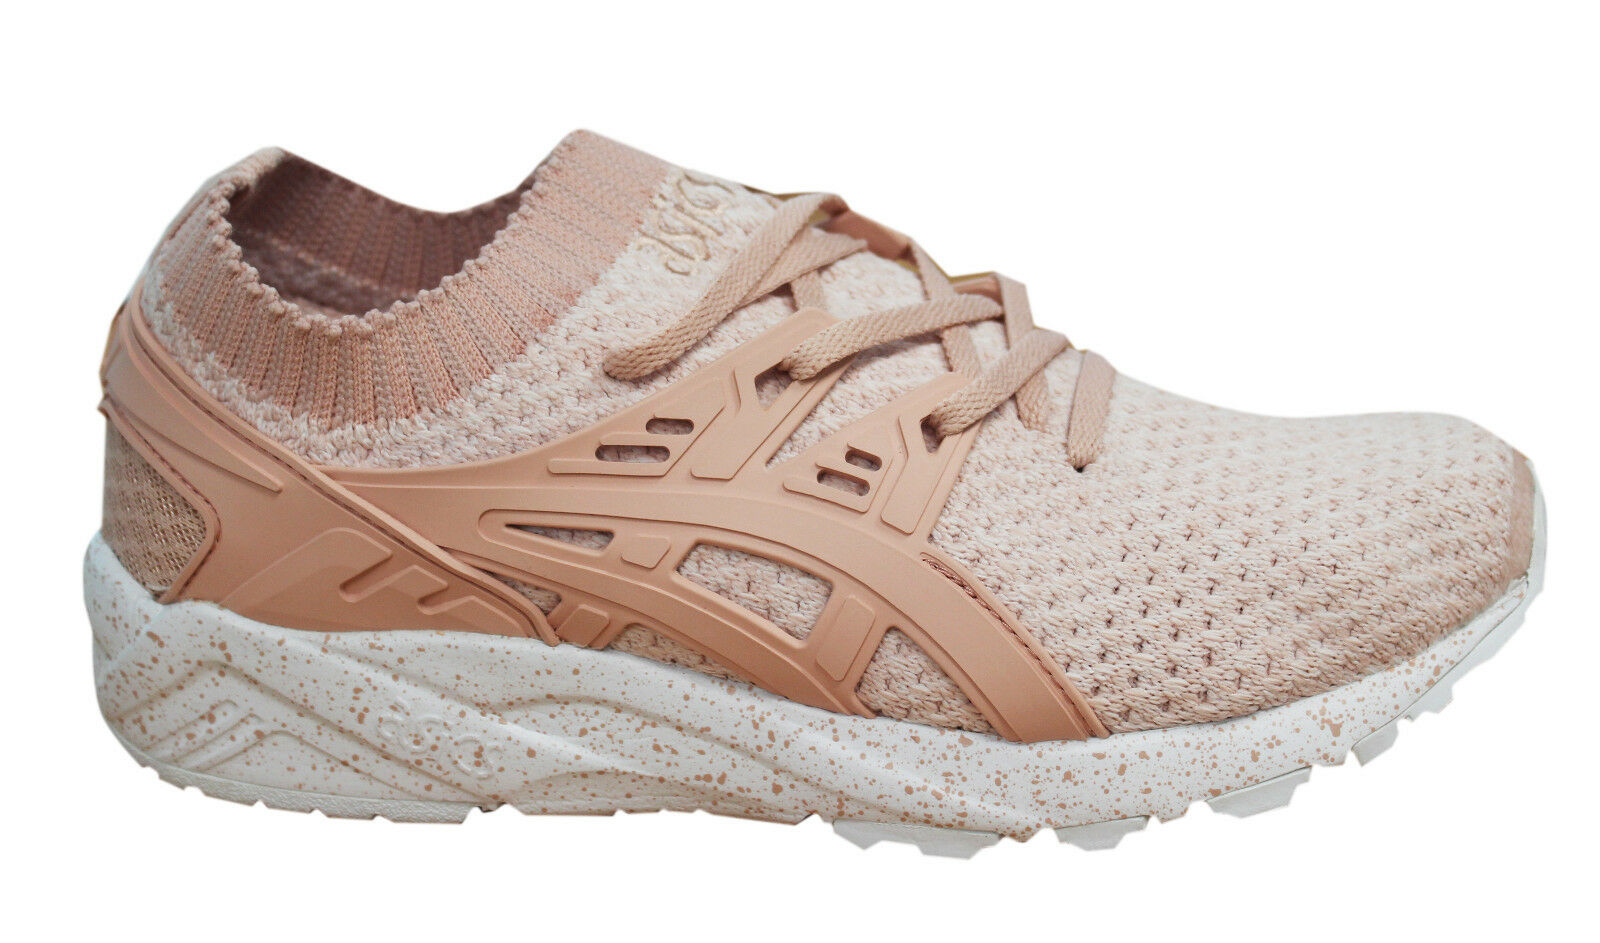 Asics Gel-Kayano Trainer Up Knit Lace Up Trainer Hombre Zapatos Light Rosa HN7Q2 1717 U42 3ad6db